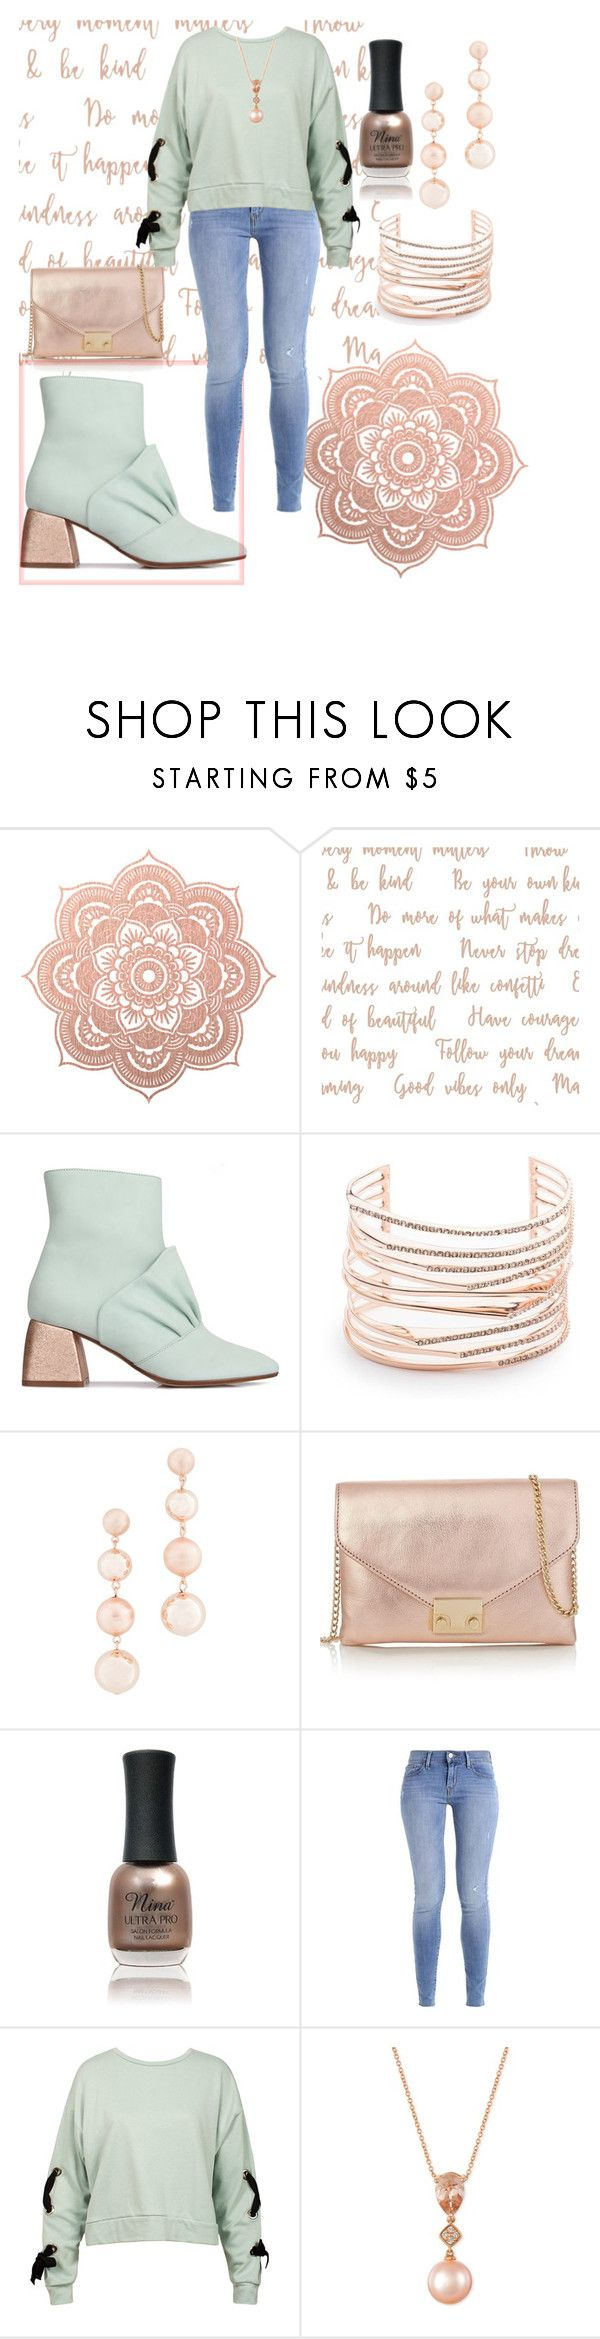 """""""ankle booties ❤"""" by cecilvenekamp ❤ liked on Polyvore featuring Beau Coops, Alexis Bittar, Rebecca Minkoff, Loeffler Randall, Charlotte Russe, Sans Souci and LE VIAN"""